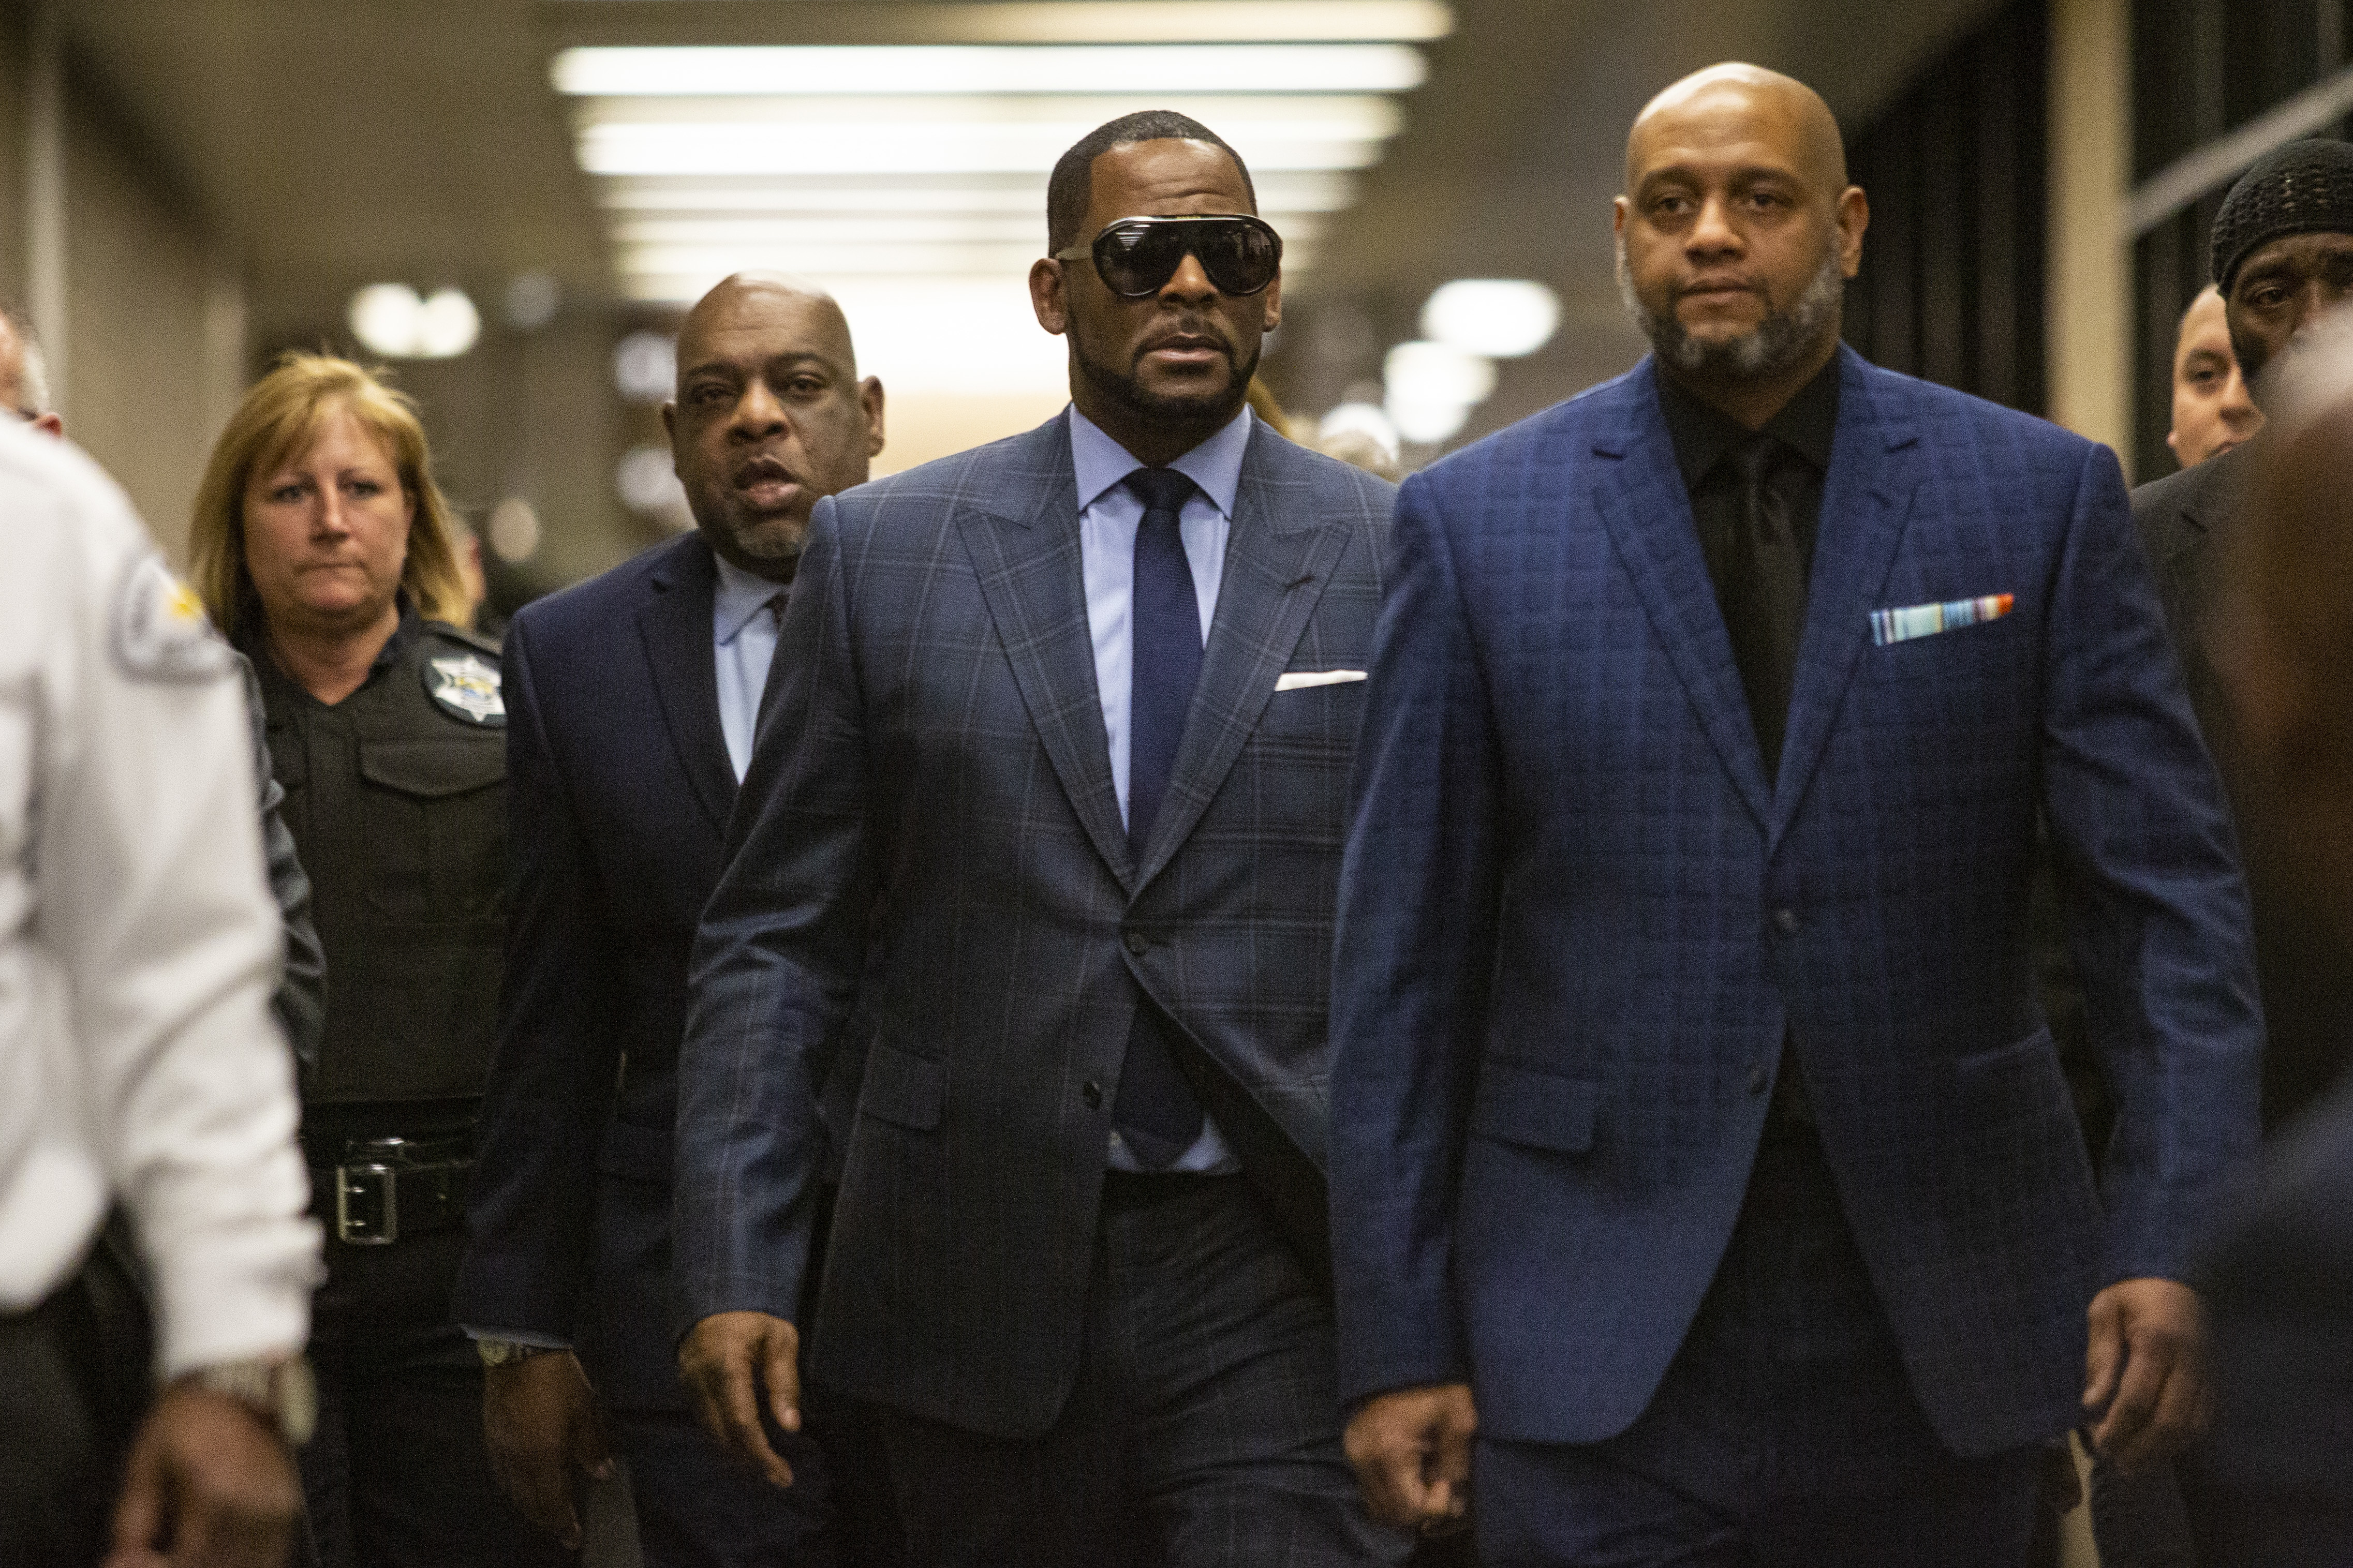 R. Kelly walks with supporters into the Daley Center in Chicago for a hearing in a child support case in March 2019.